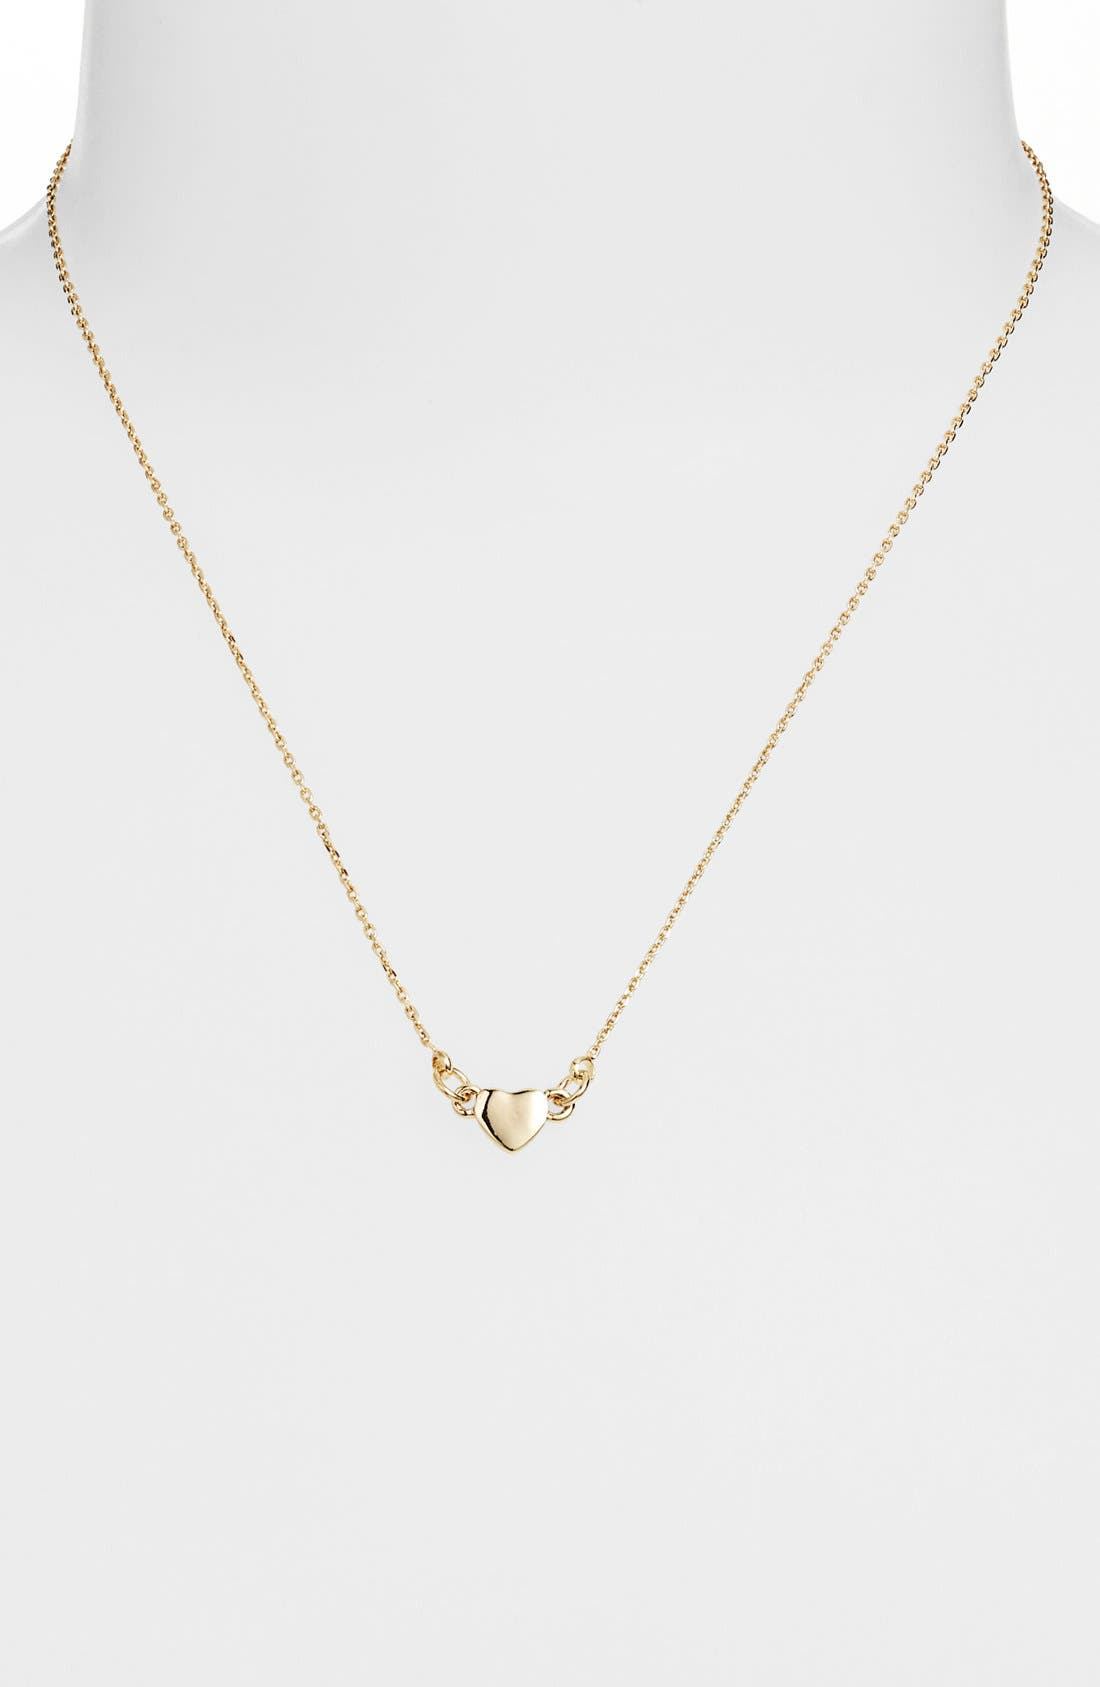 Alternate Image 1 Selected - Stephan & Co. Mini Heart Charm Necklace (Juniors)